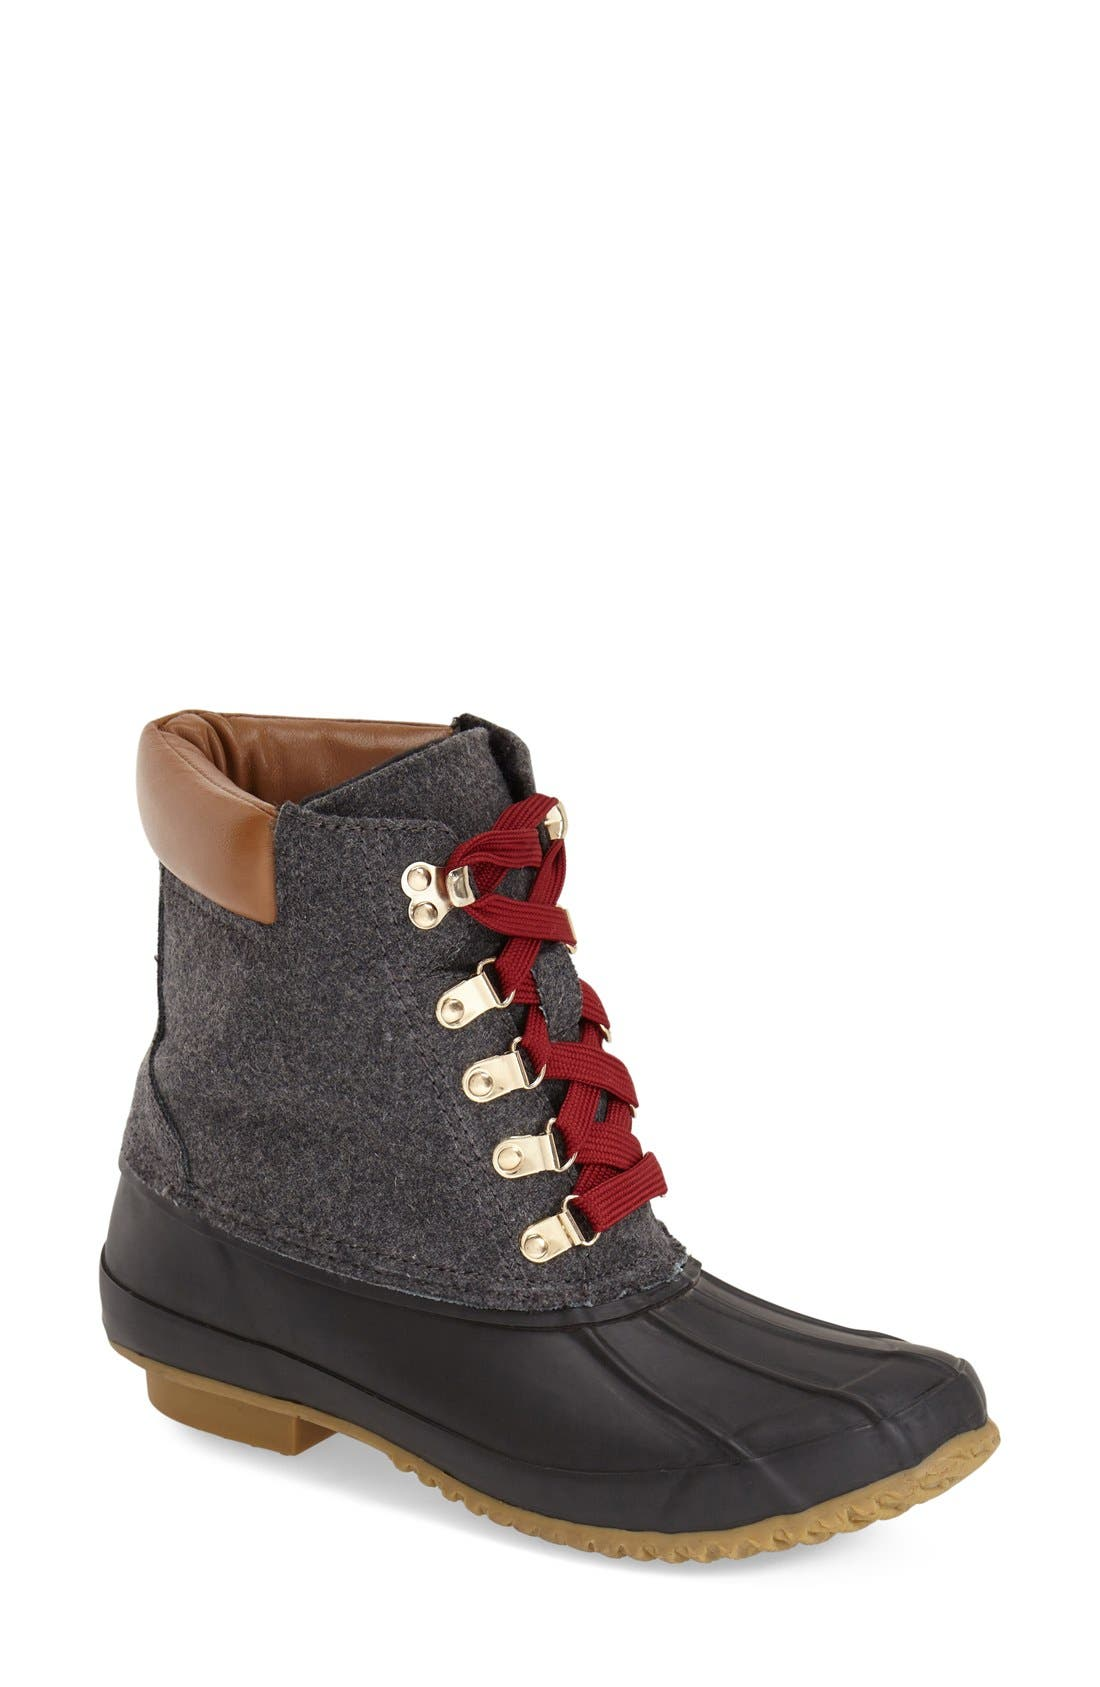 Main Image - Joie'Delyth'Lace-Up Boot (Women)